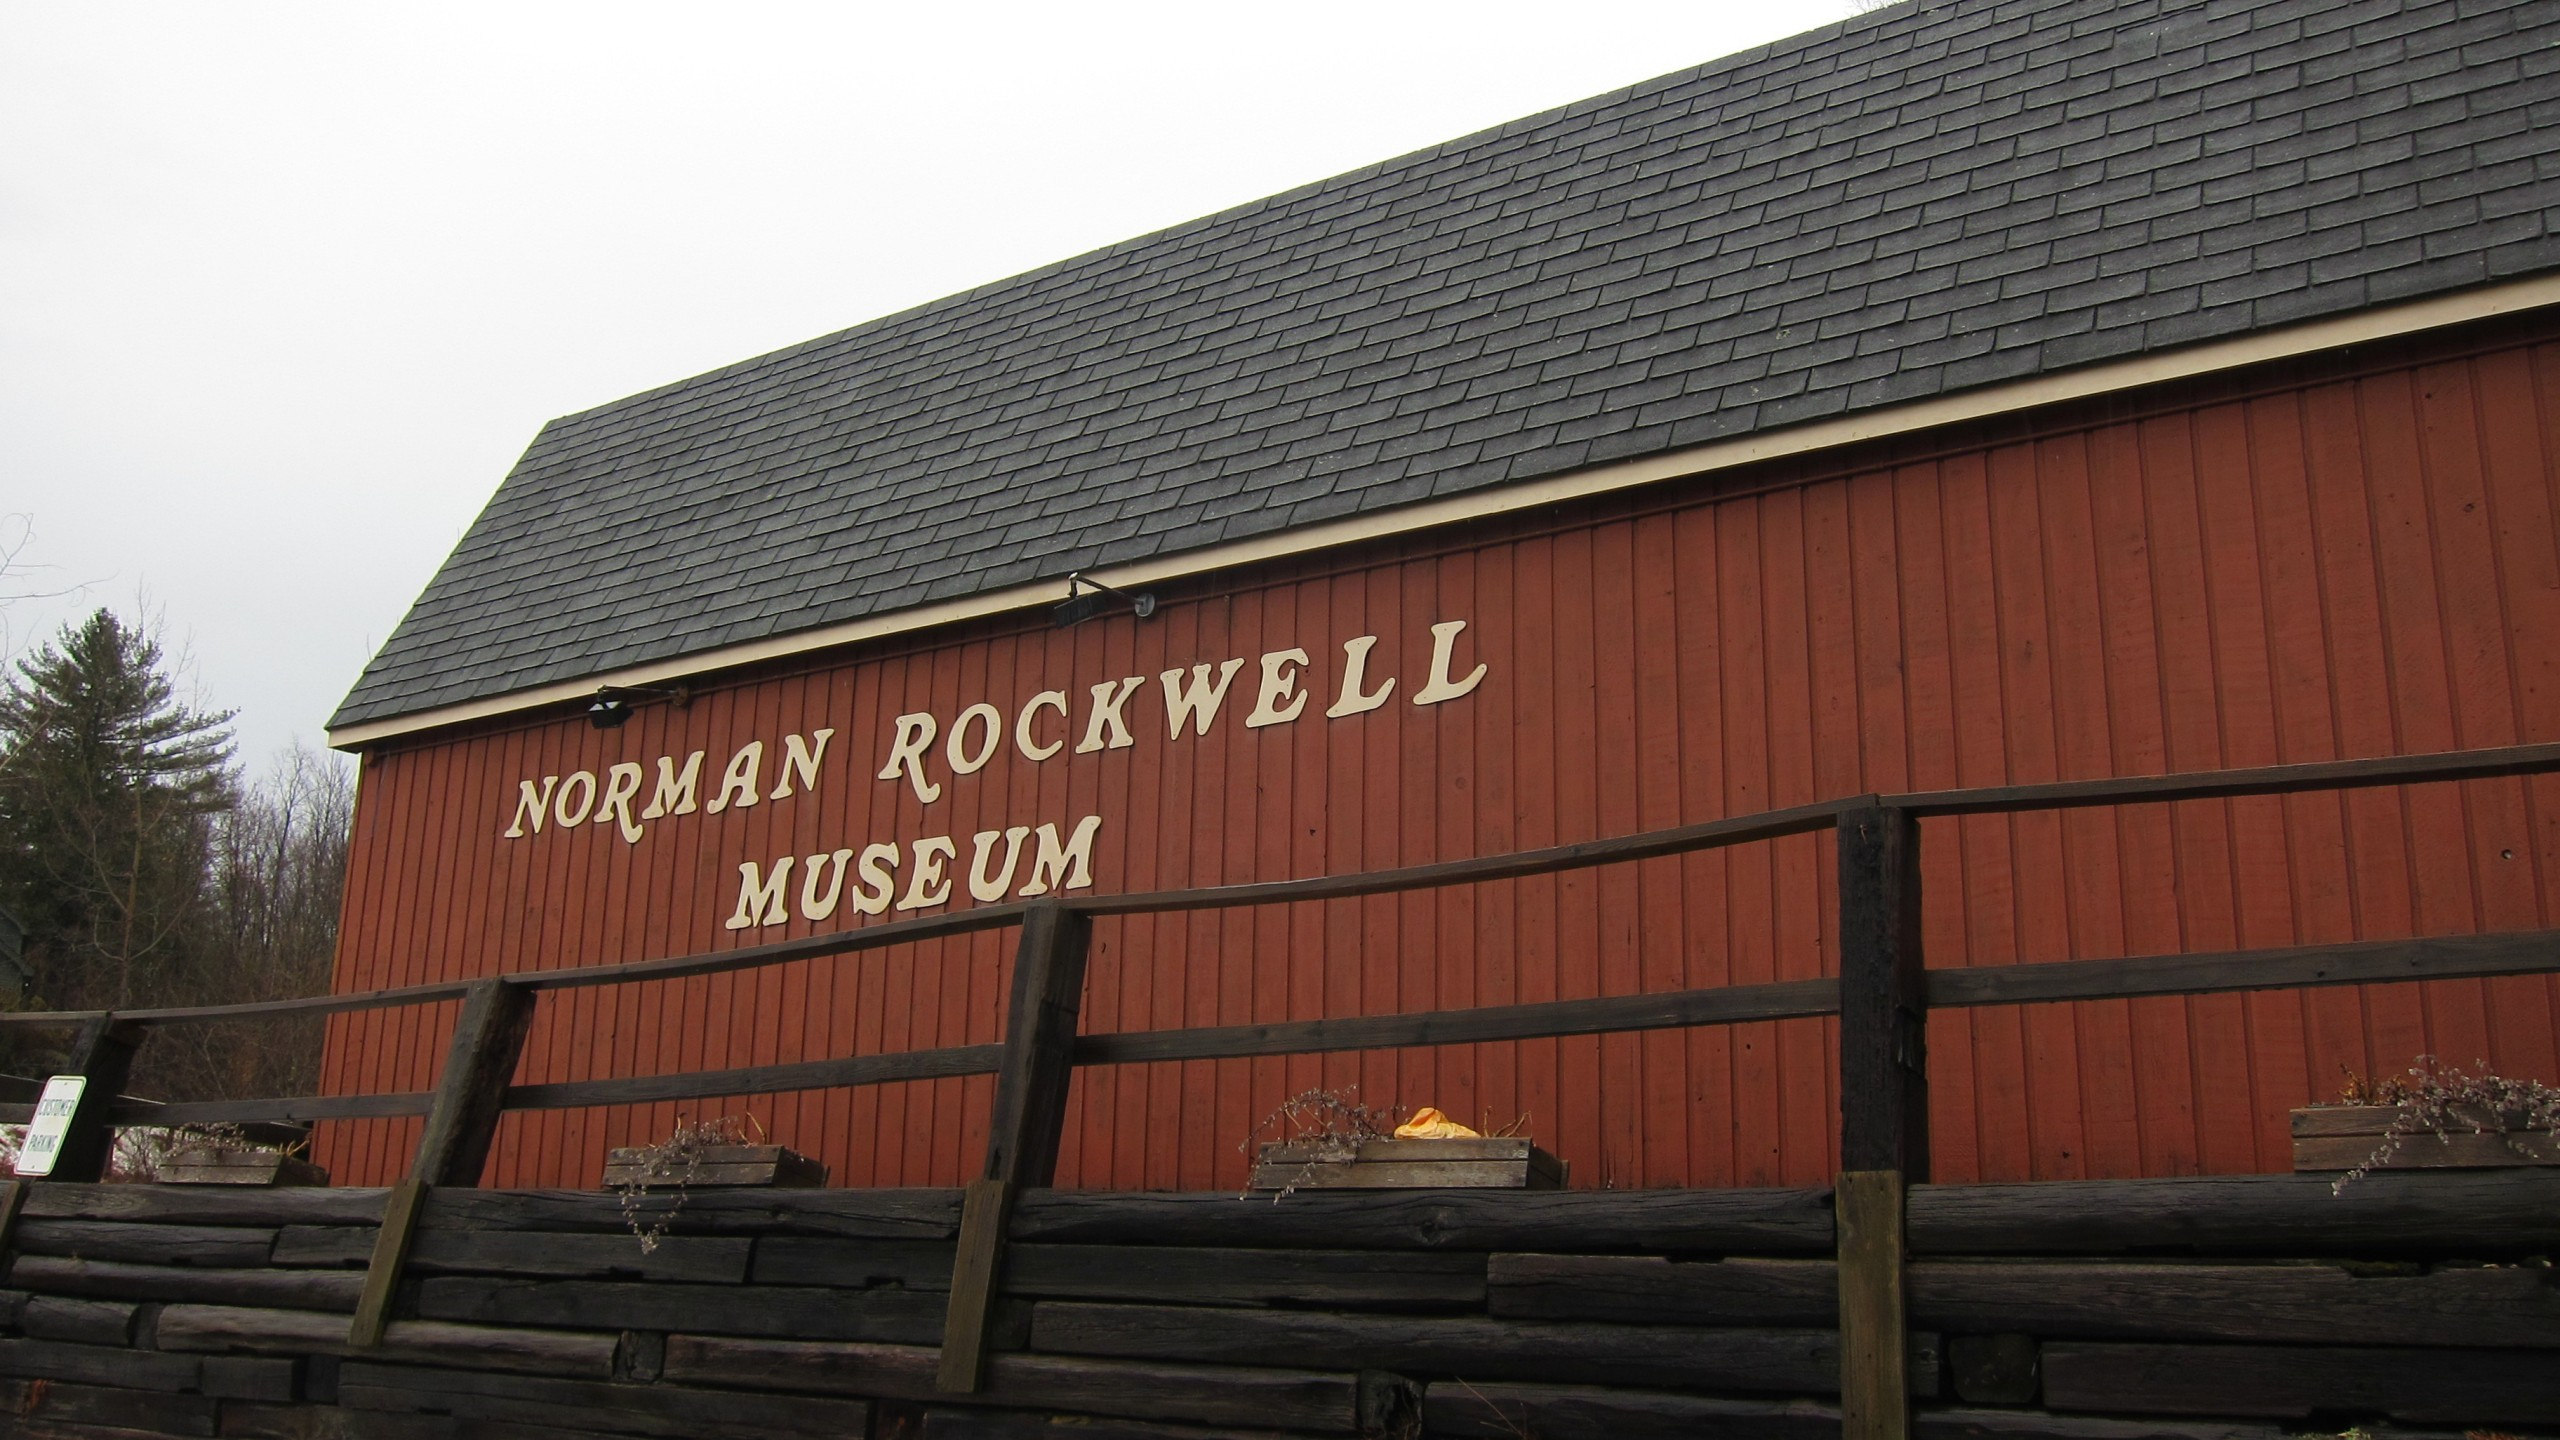 The Norman Rockwell Museum in January 2014 in Rutland, Vermont. (Joe Shlabotnik / Flickr / CC BY-NC-SA 2.0)